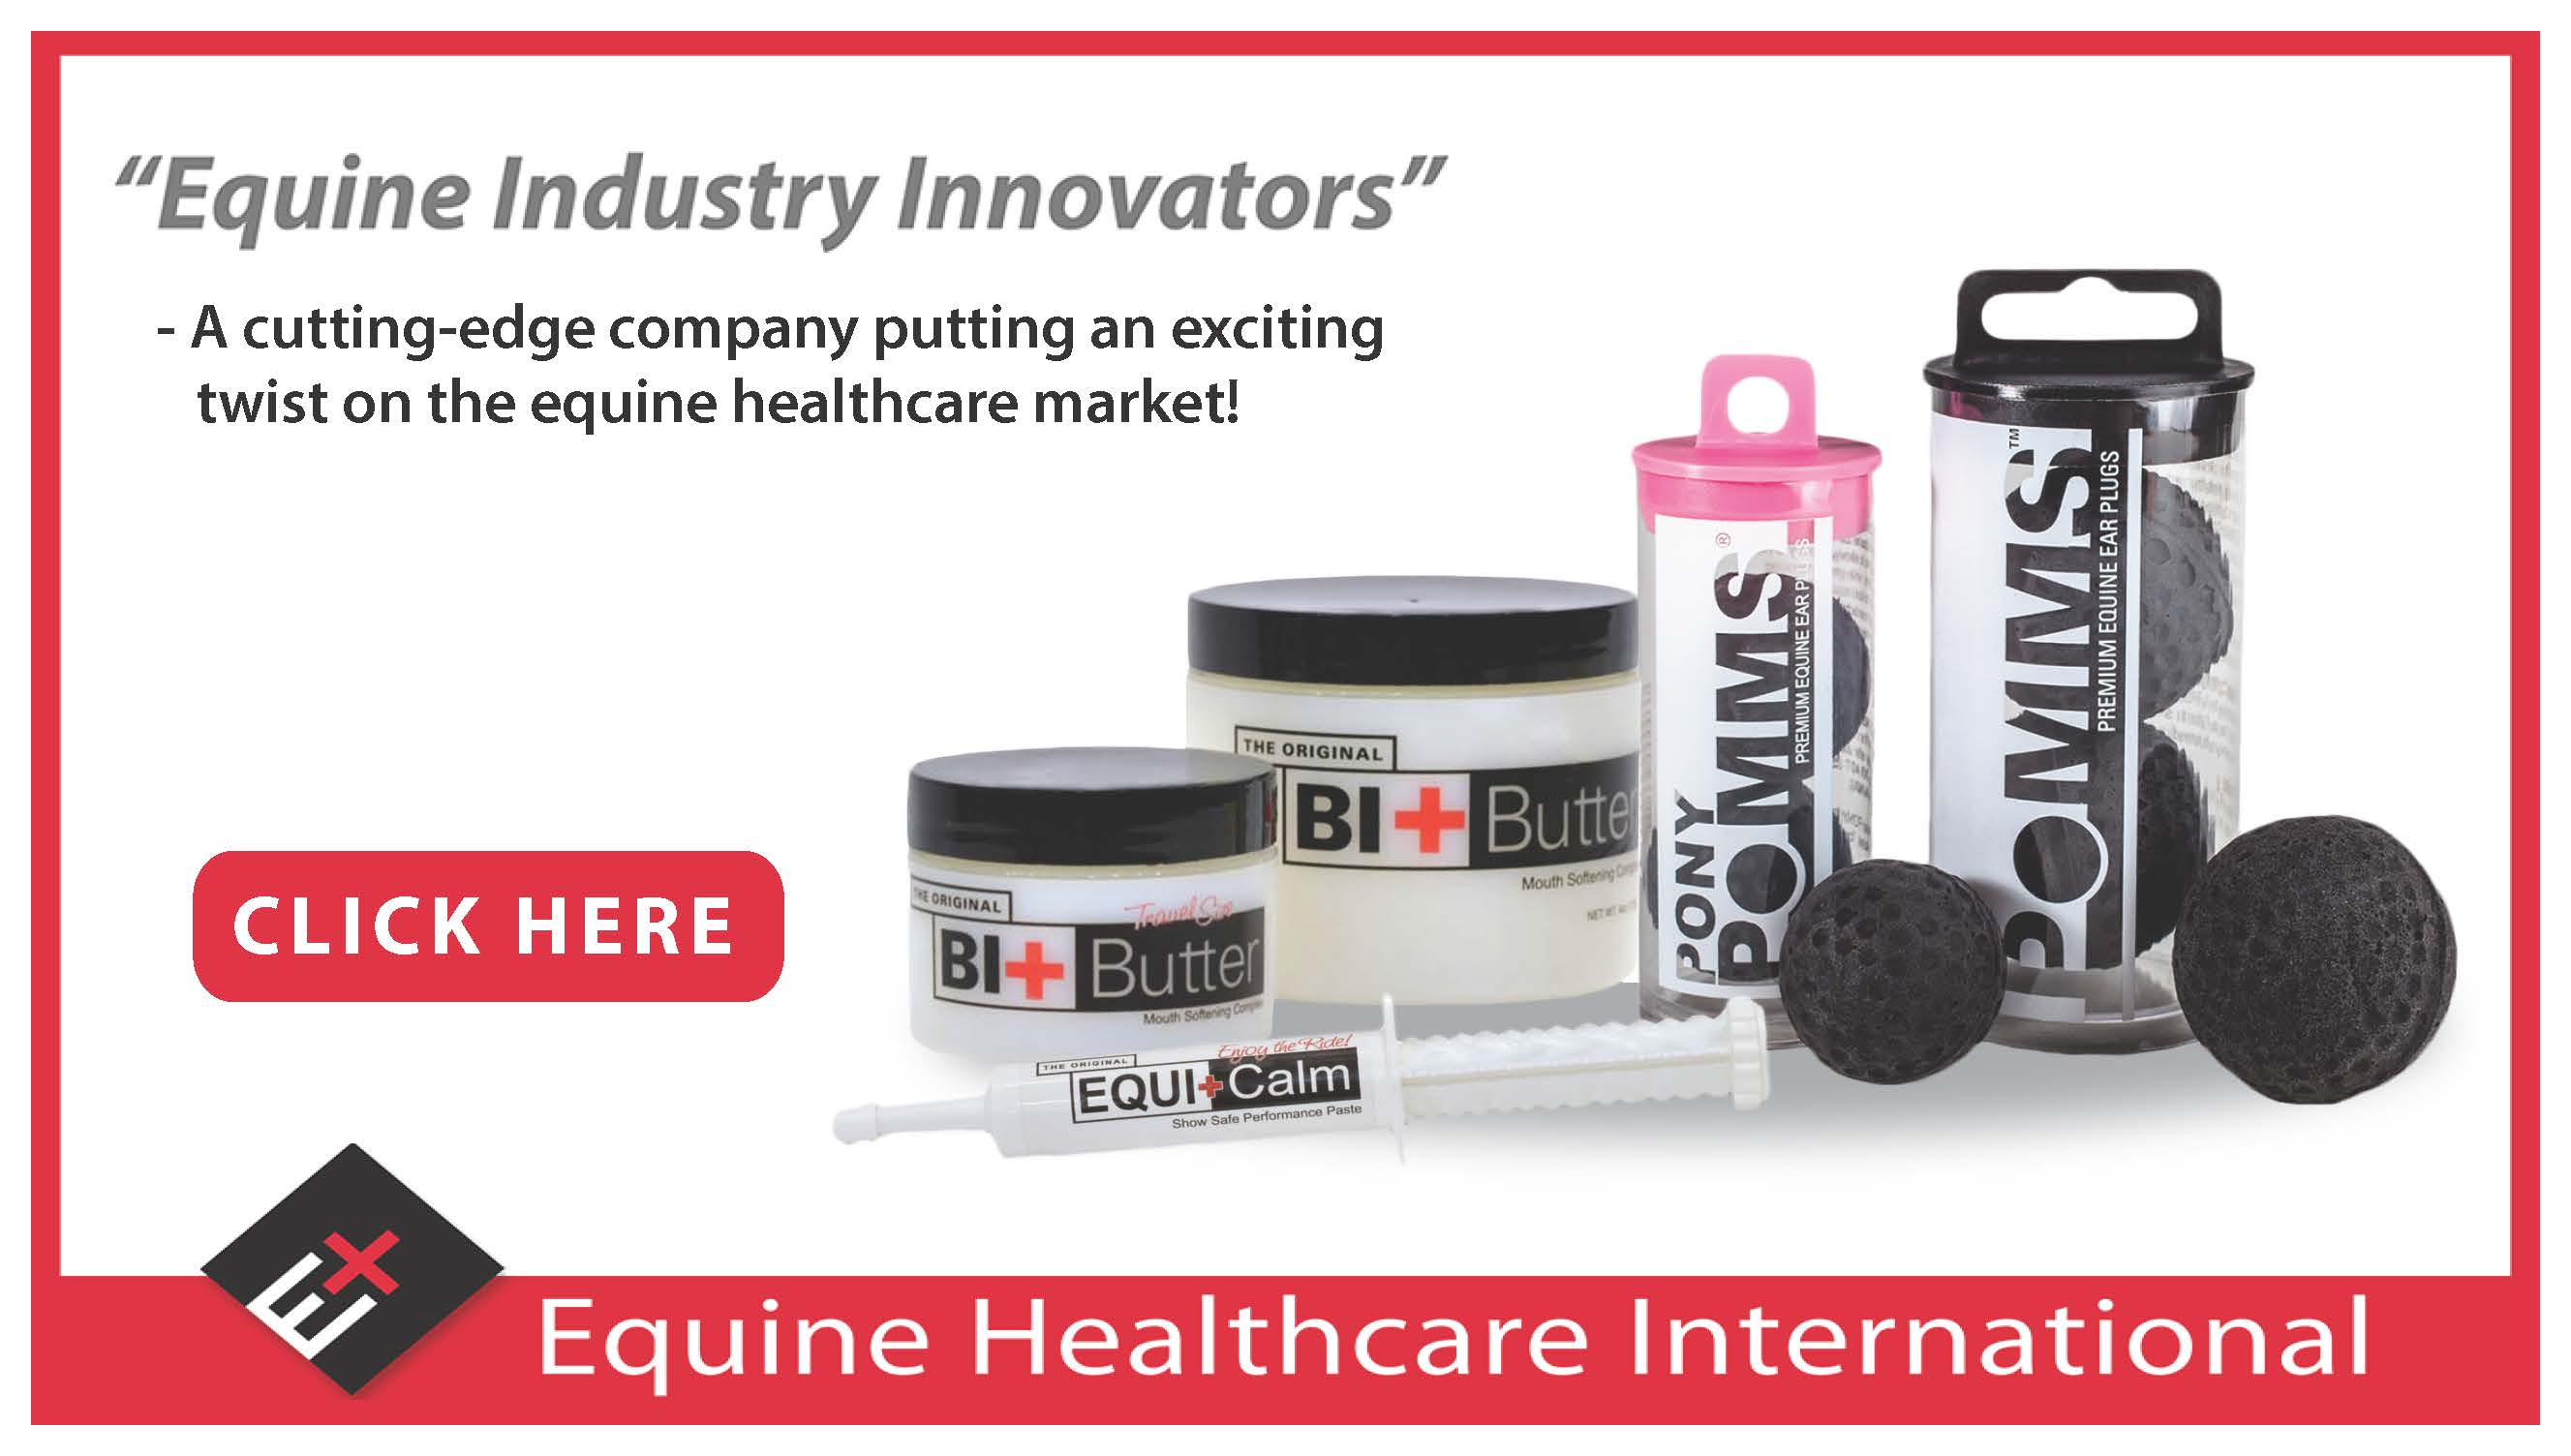 New at Jacks Inc. - Equine Healthcare Products